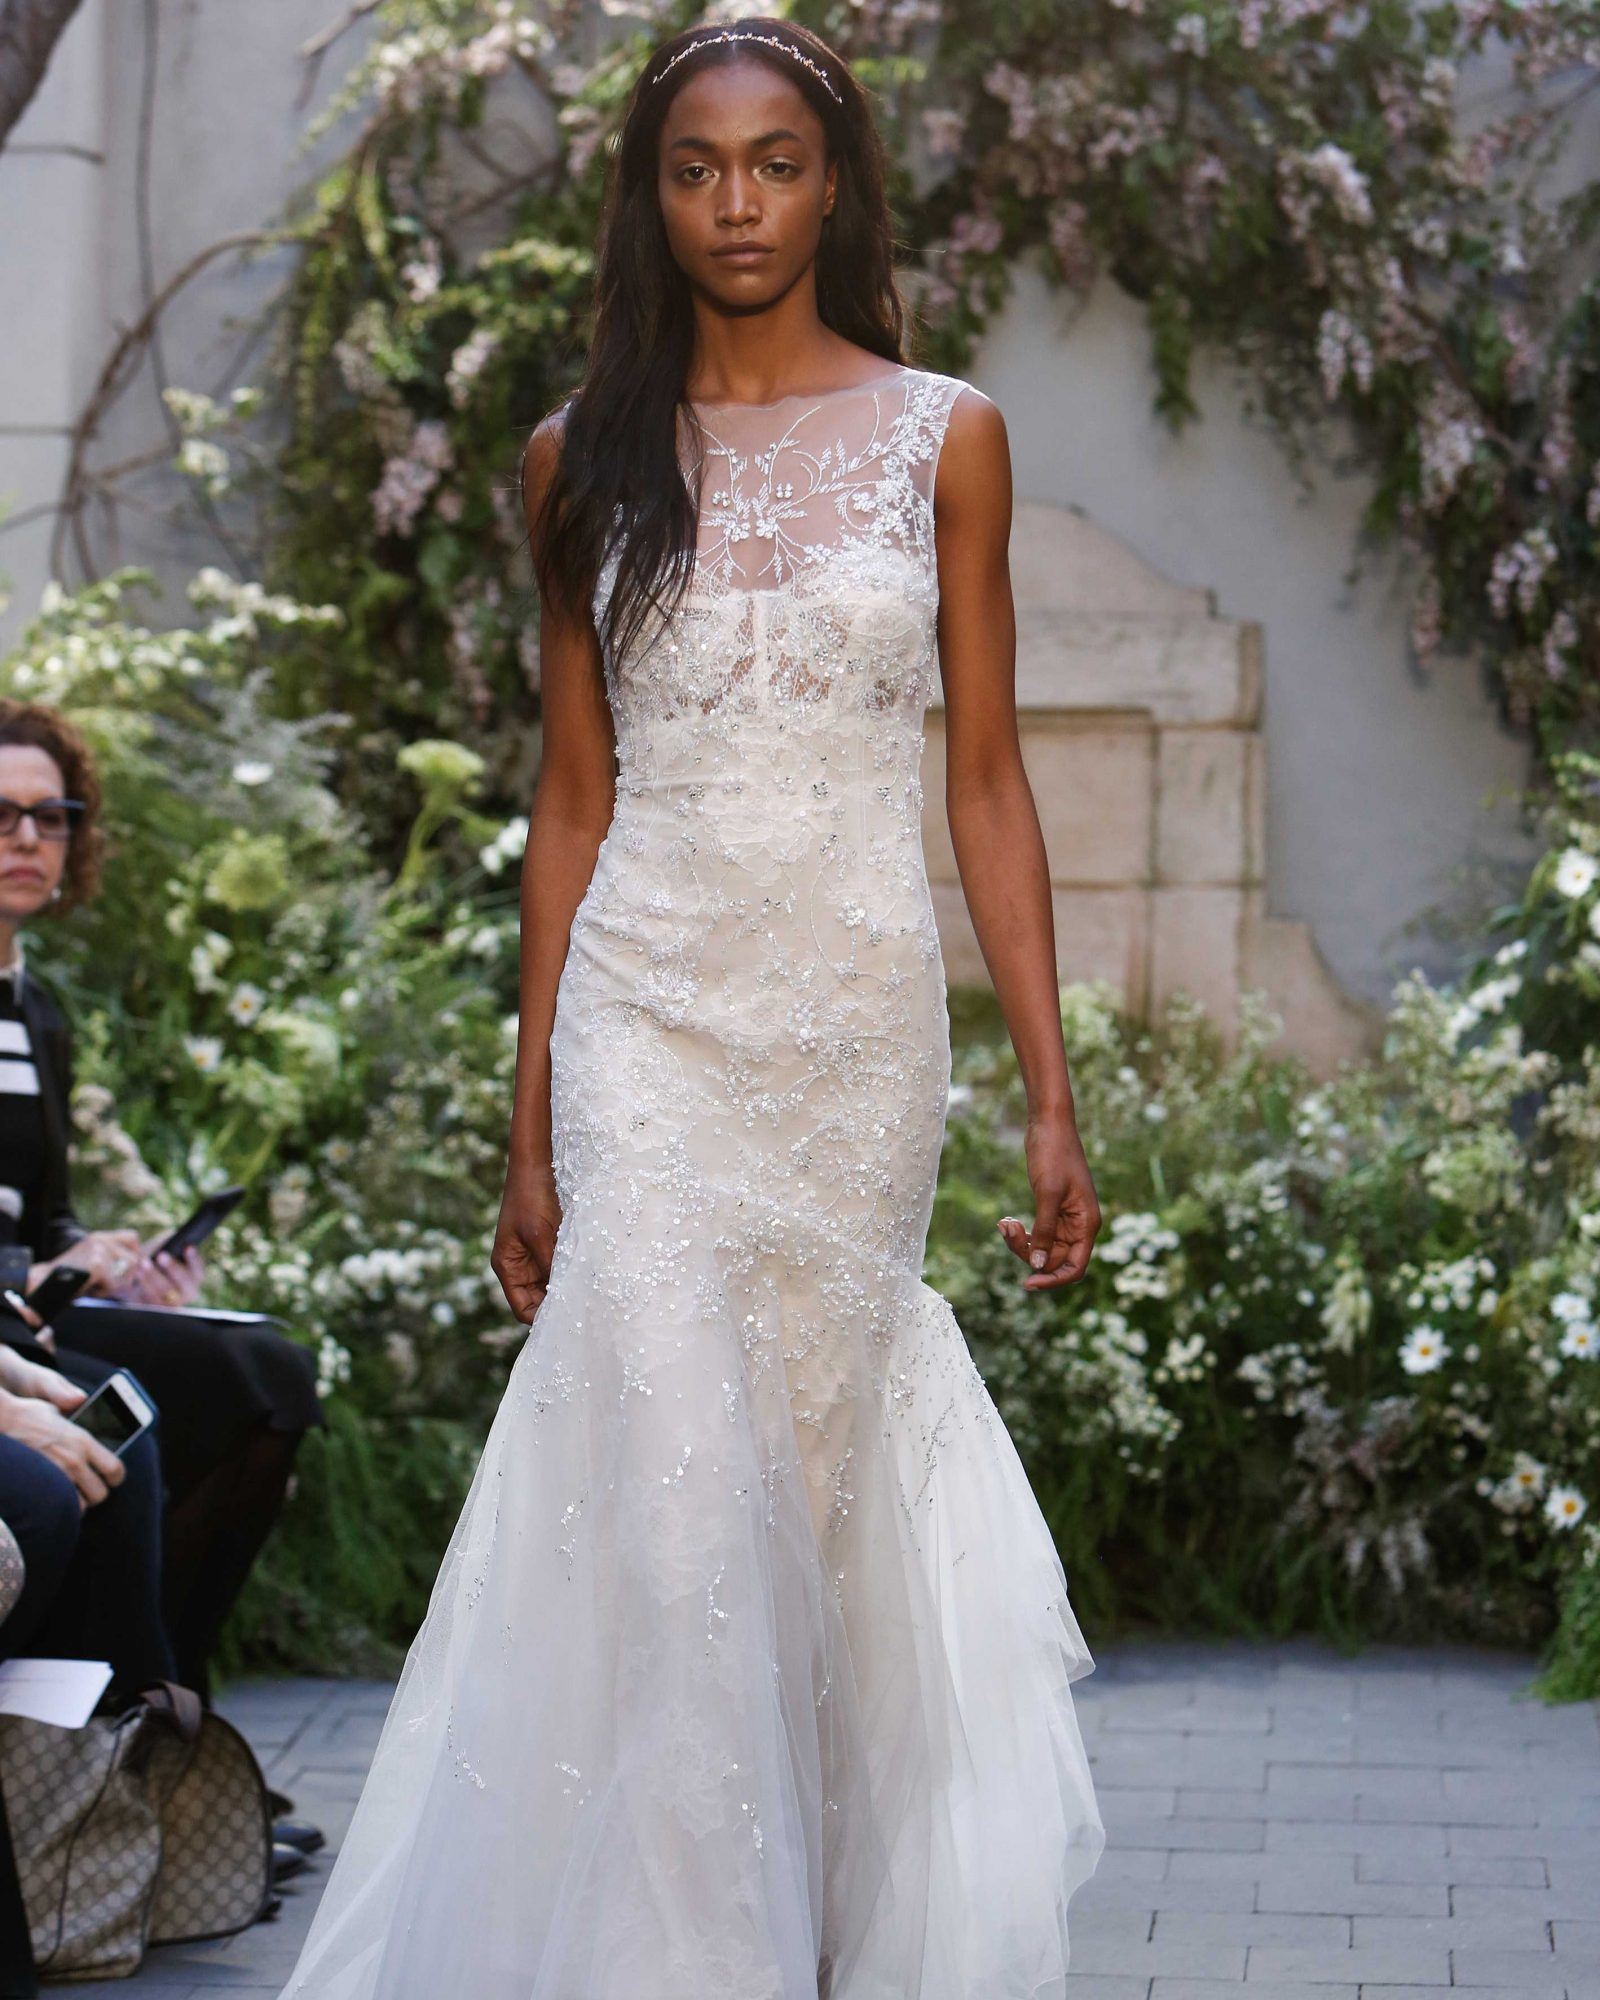 monique-lhuillier-spring2017-d113026-011.jpg